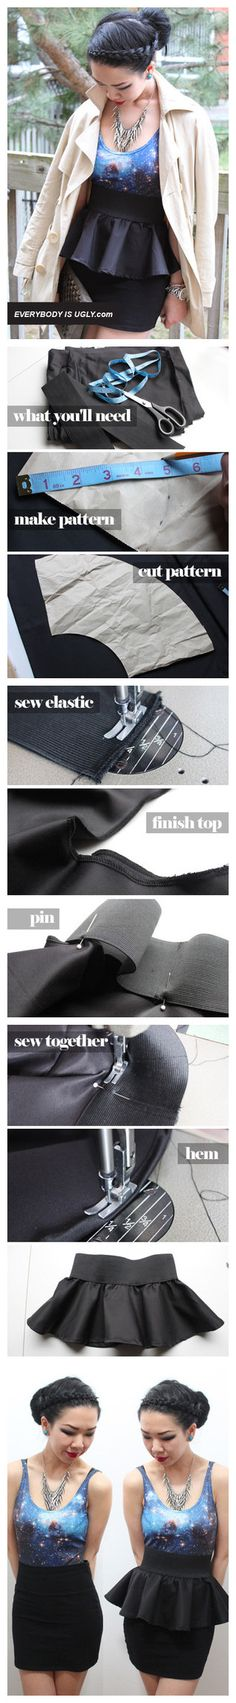 DIY Detachable Peplum. who wants to sew this for me?!